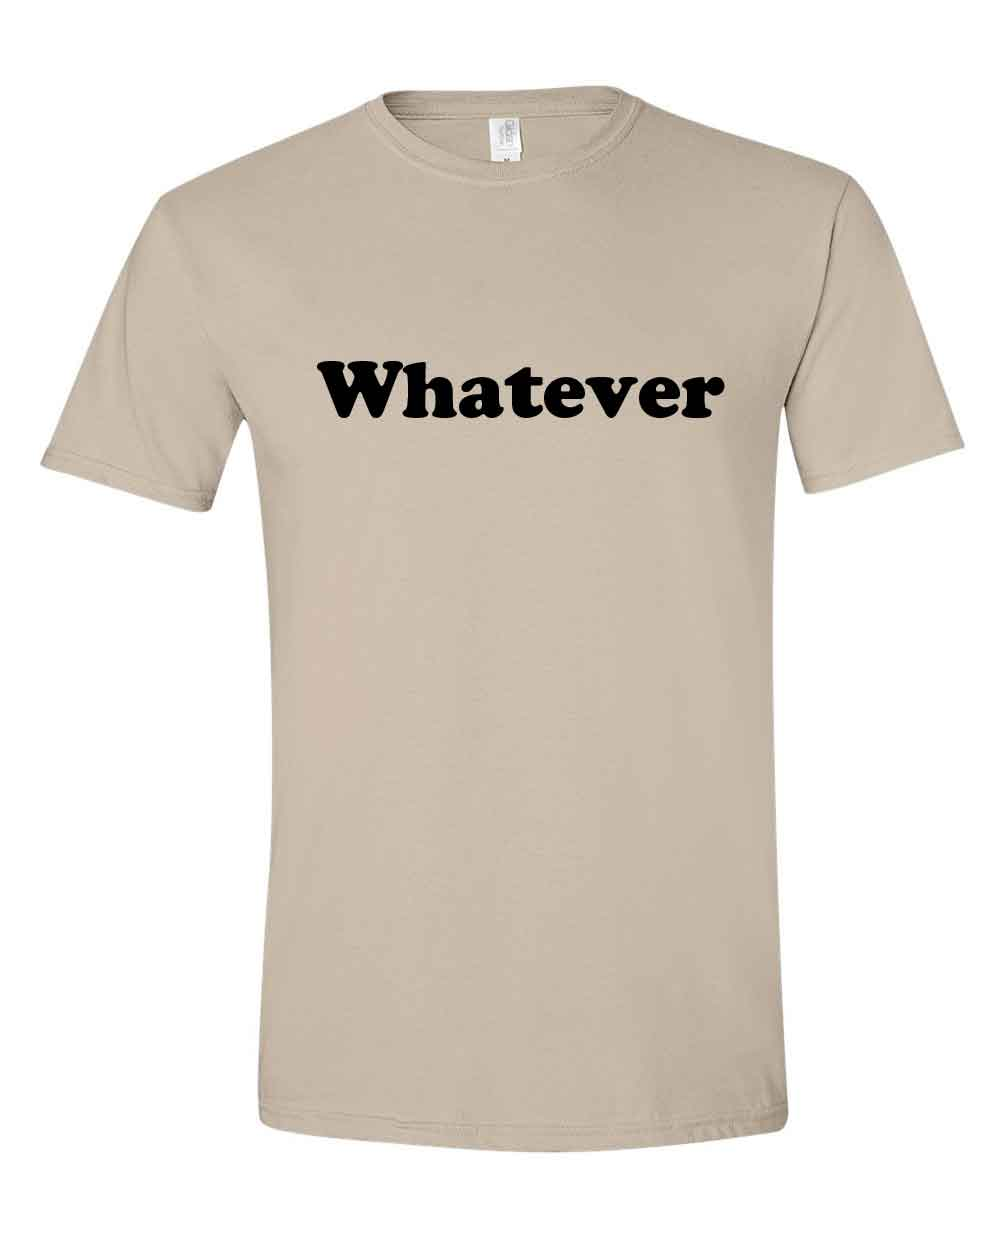 Whatever Tee Shirt